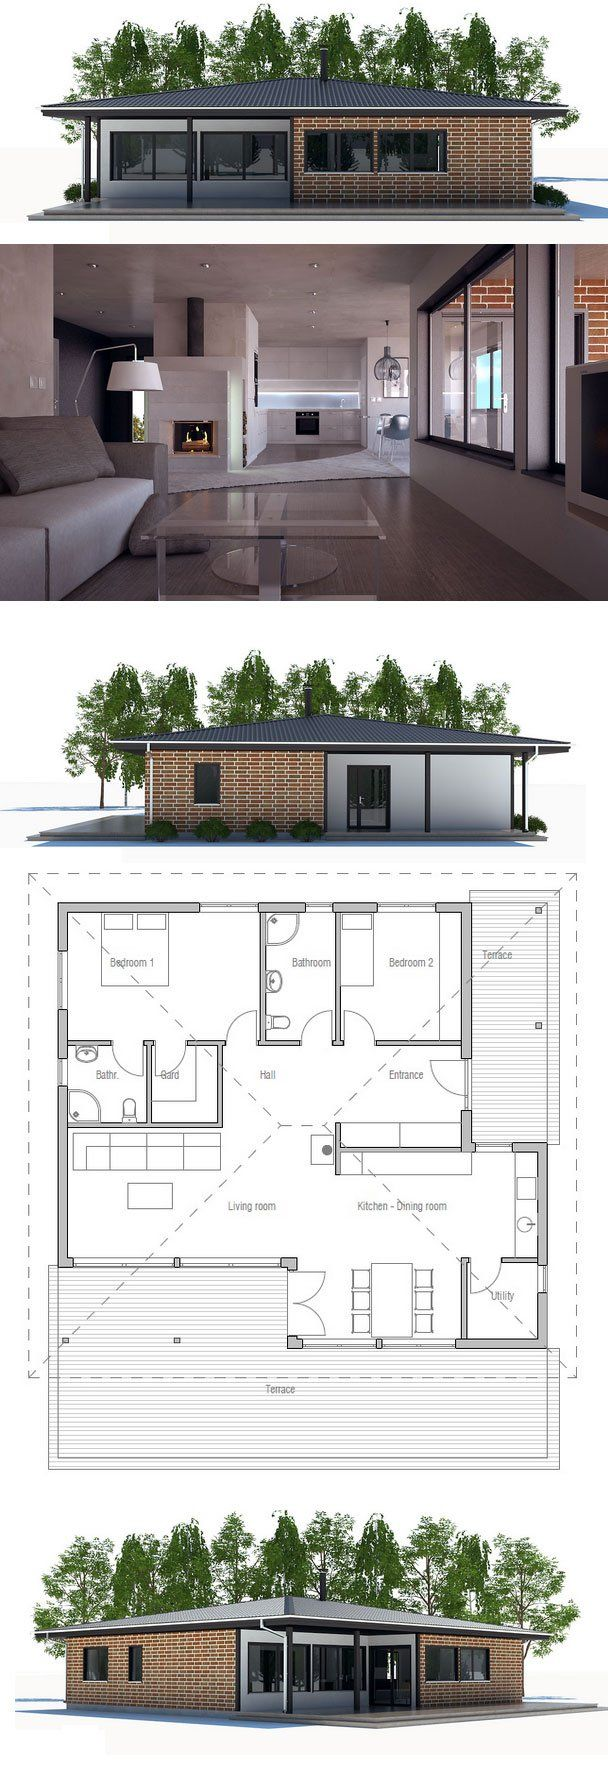 Best Ideas About Two Bedroom House On Pinterest Small Home - Modern home design plans